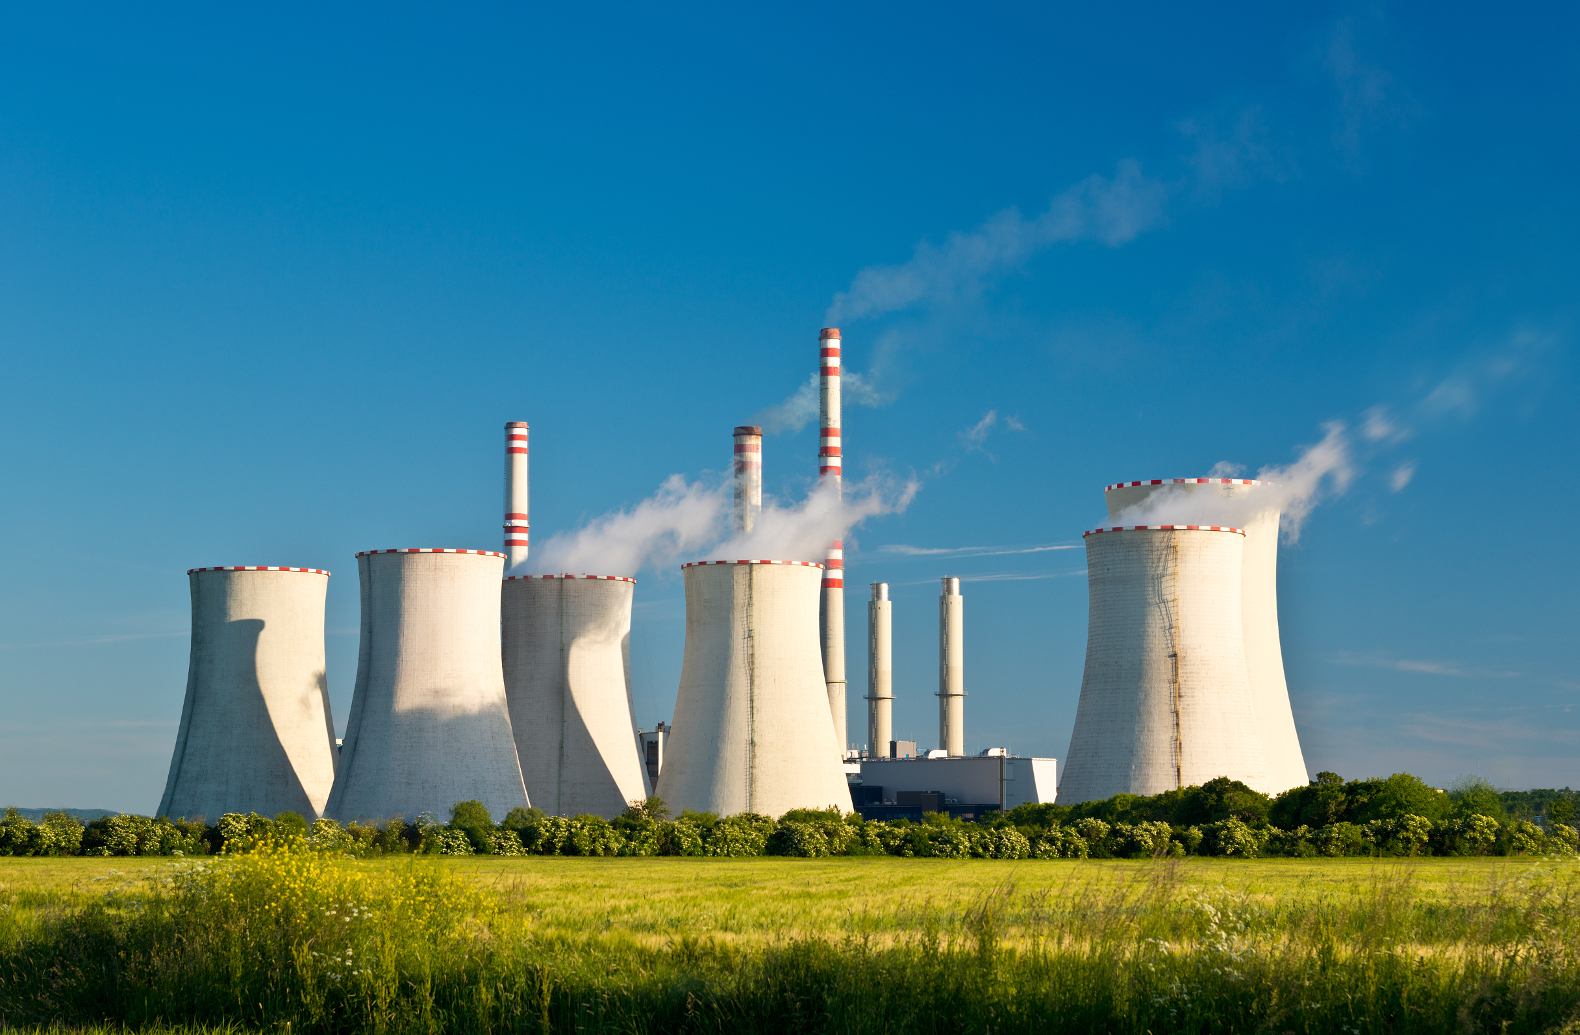 Critics fired up over UK power plant's promise of